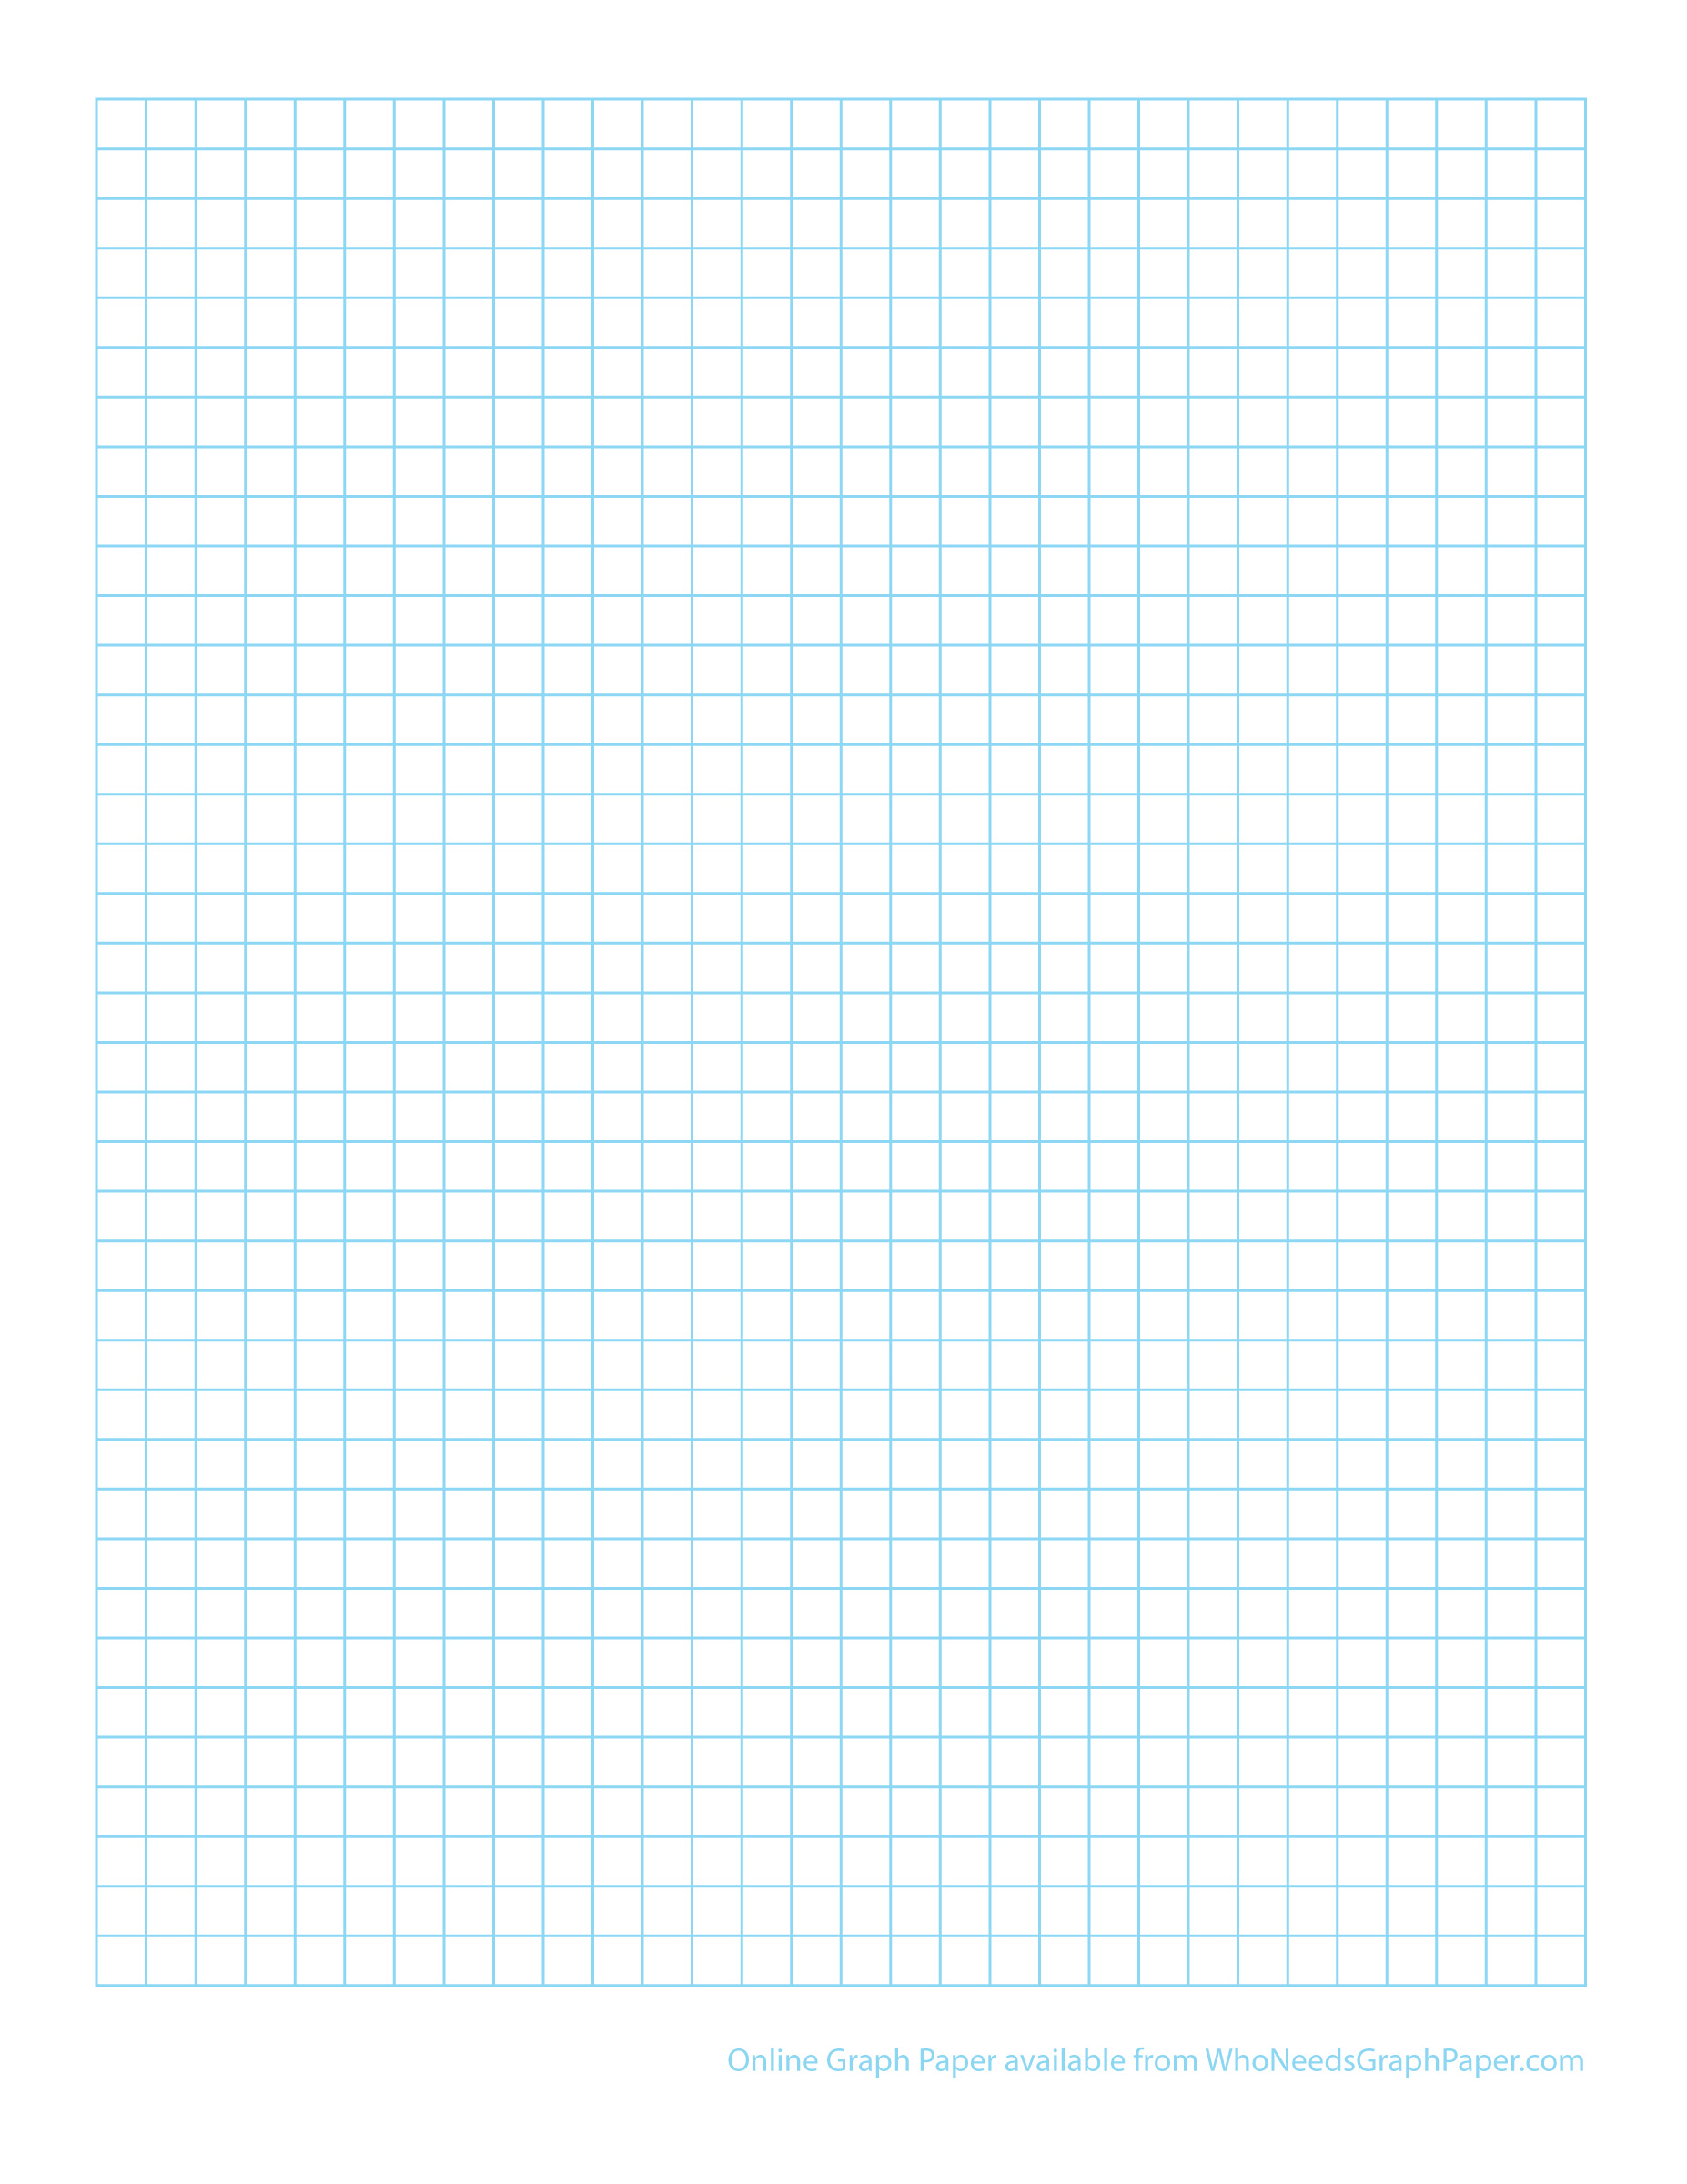 It is a graphic of Simplicity Printable Graph Papers